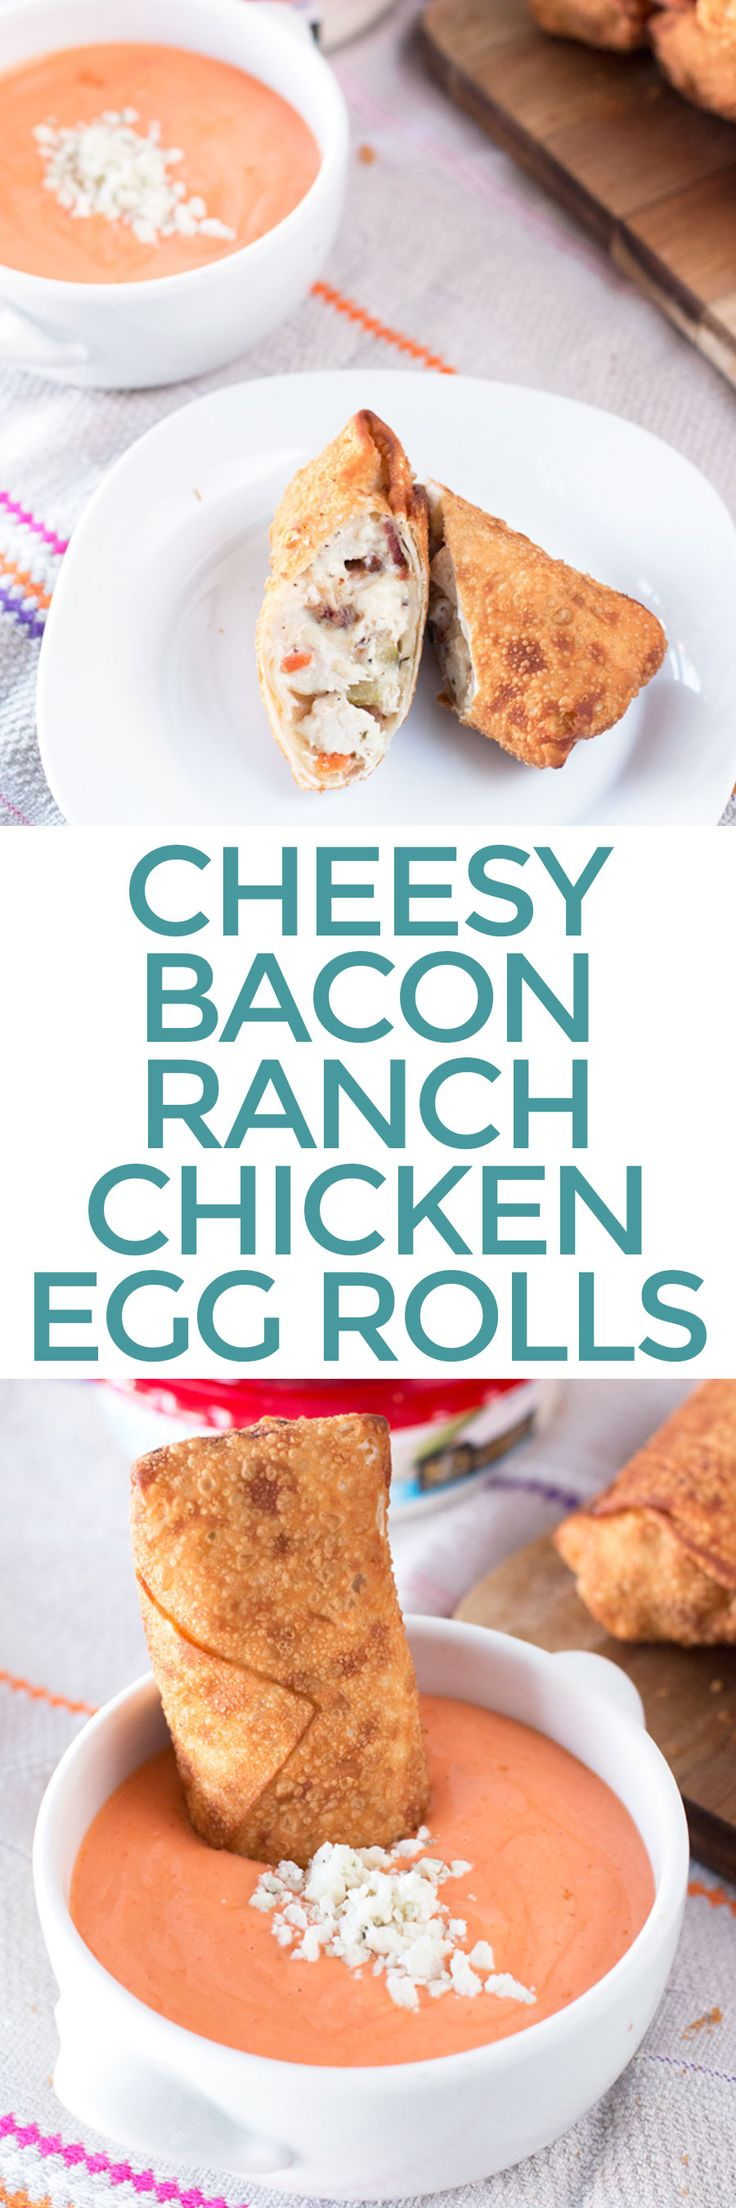 Cheesy Bacon Ranch Chicken Egg Rolls with Creamy Buffalo Dipping Sauce – Cake 'n Knife